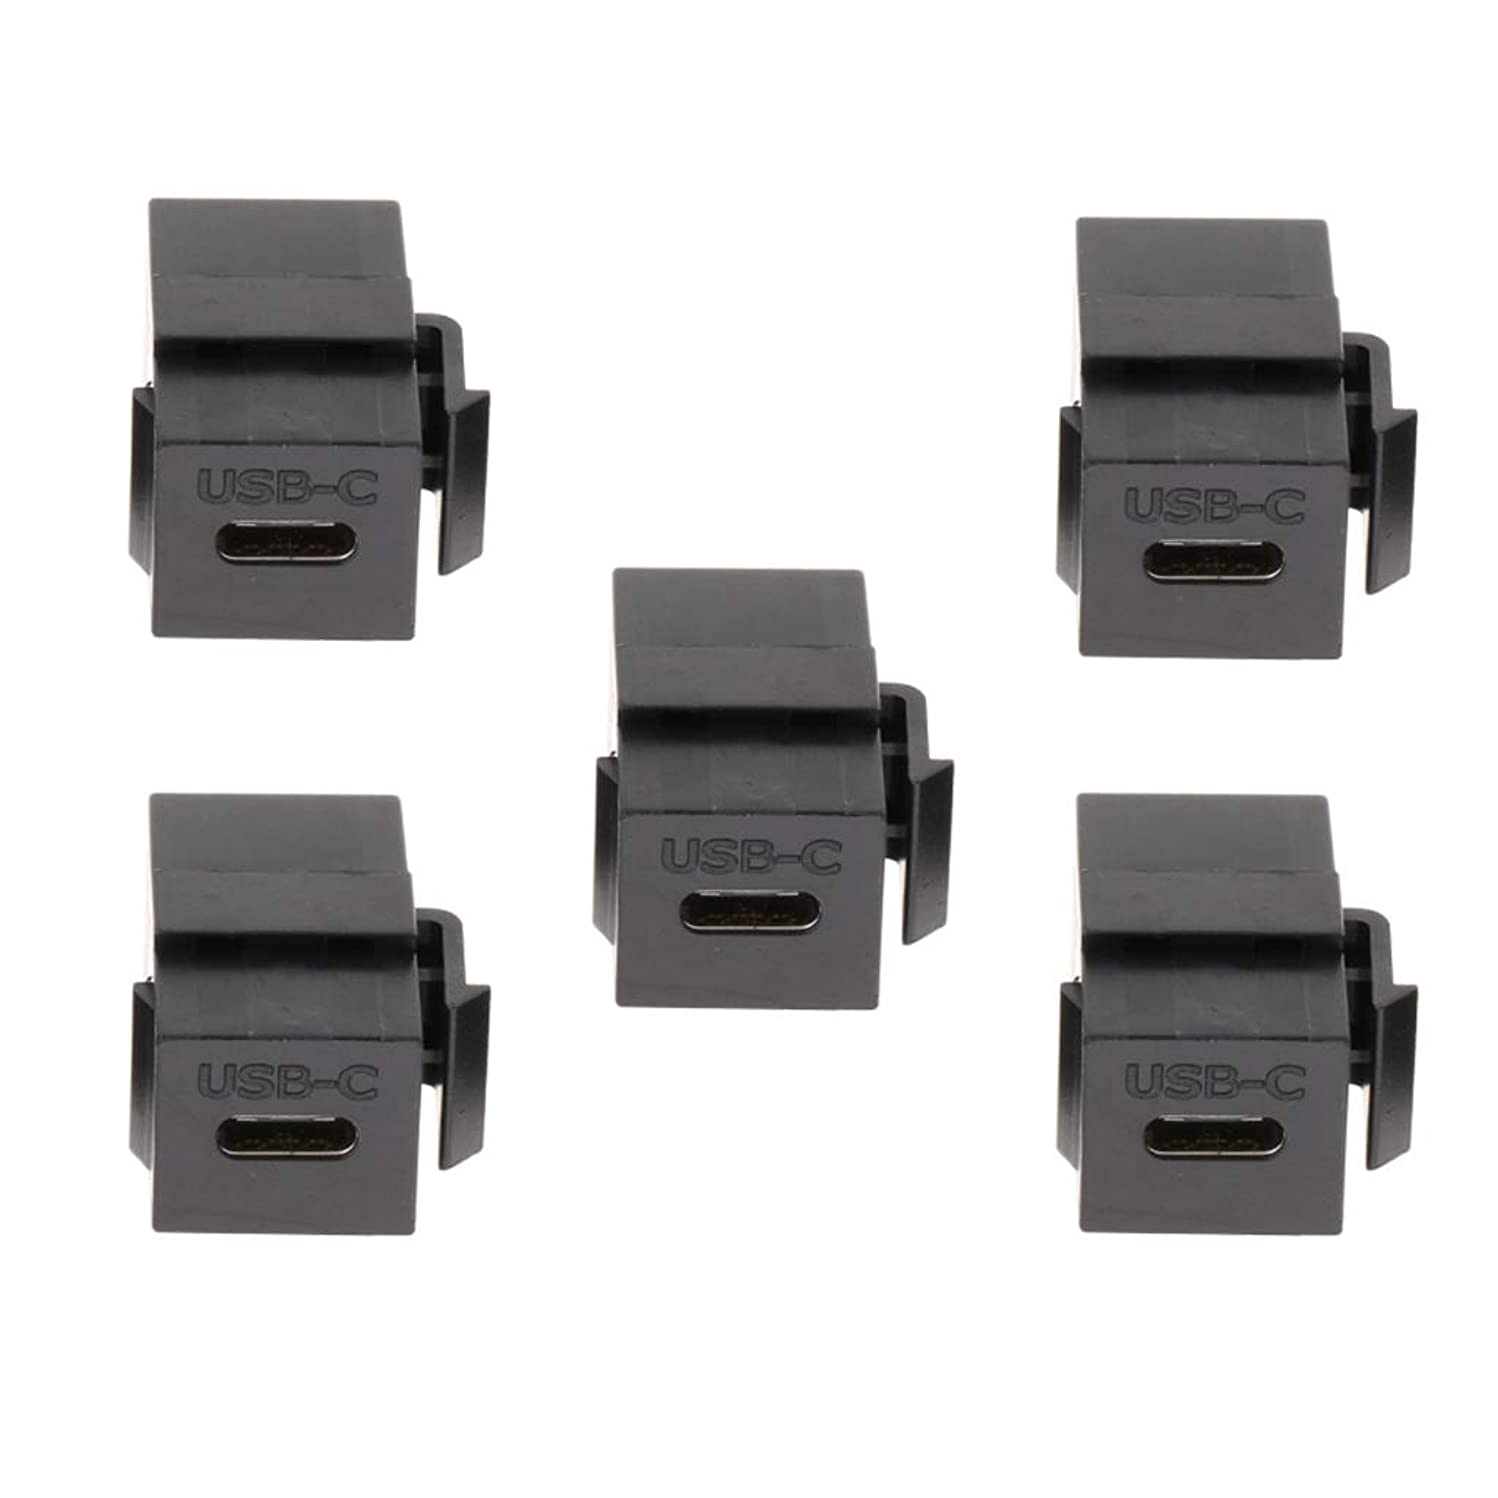 Flameer 5Pack USB C Type C Connector Keystone Jack for Wall Plate Outlet Panel Black